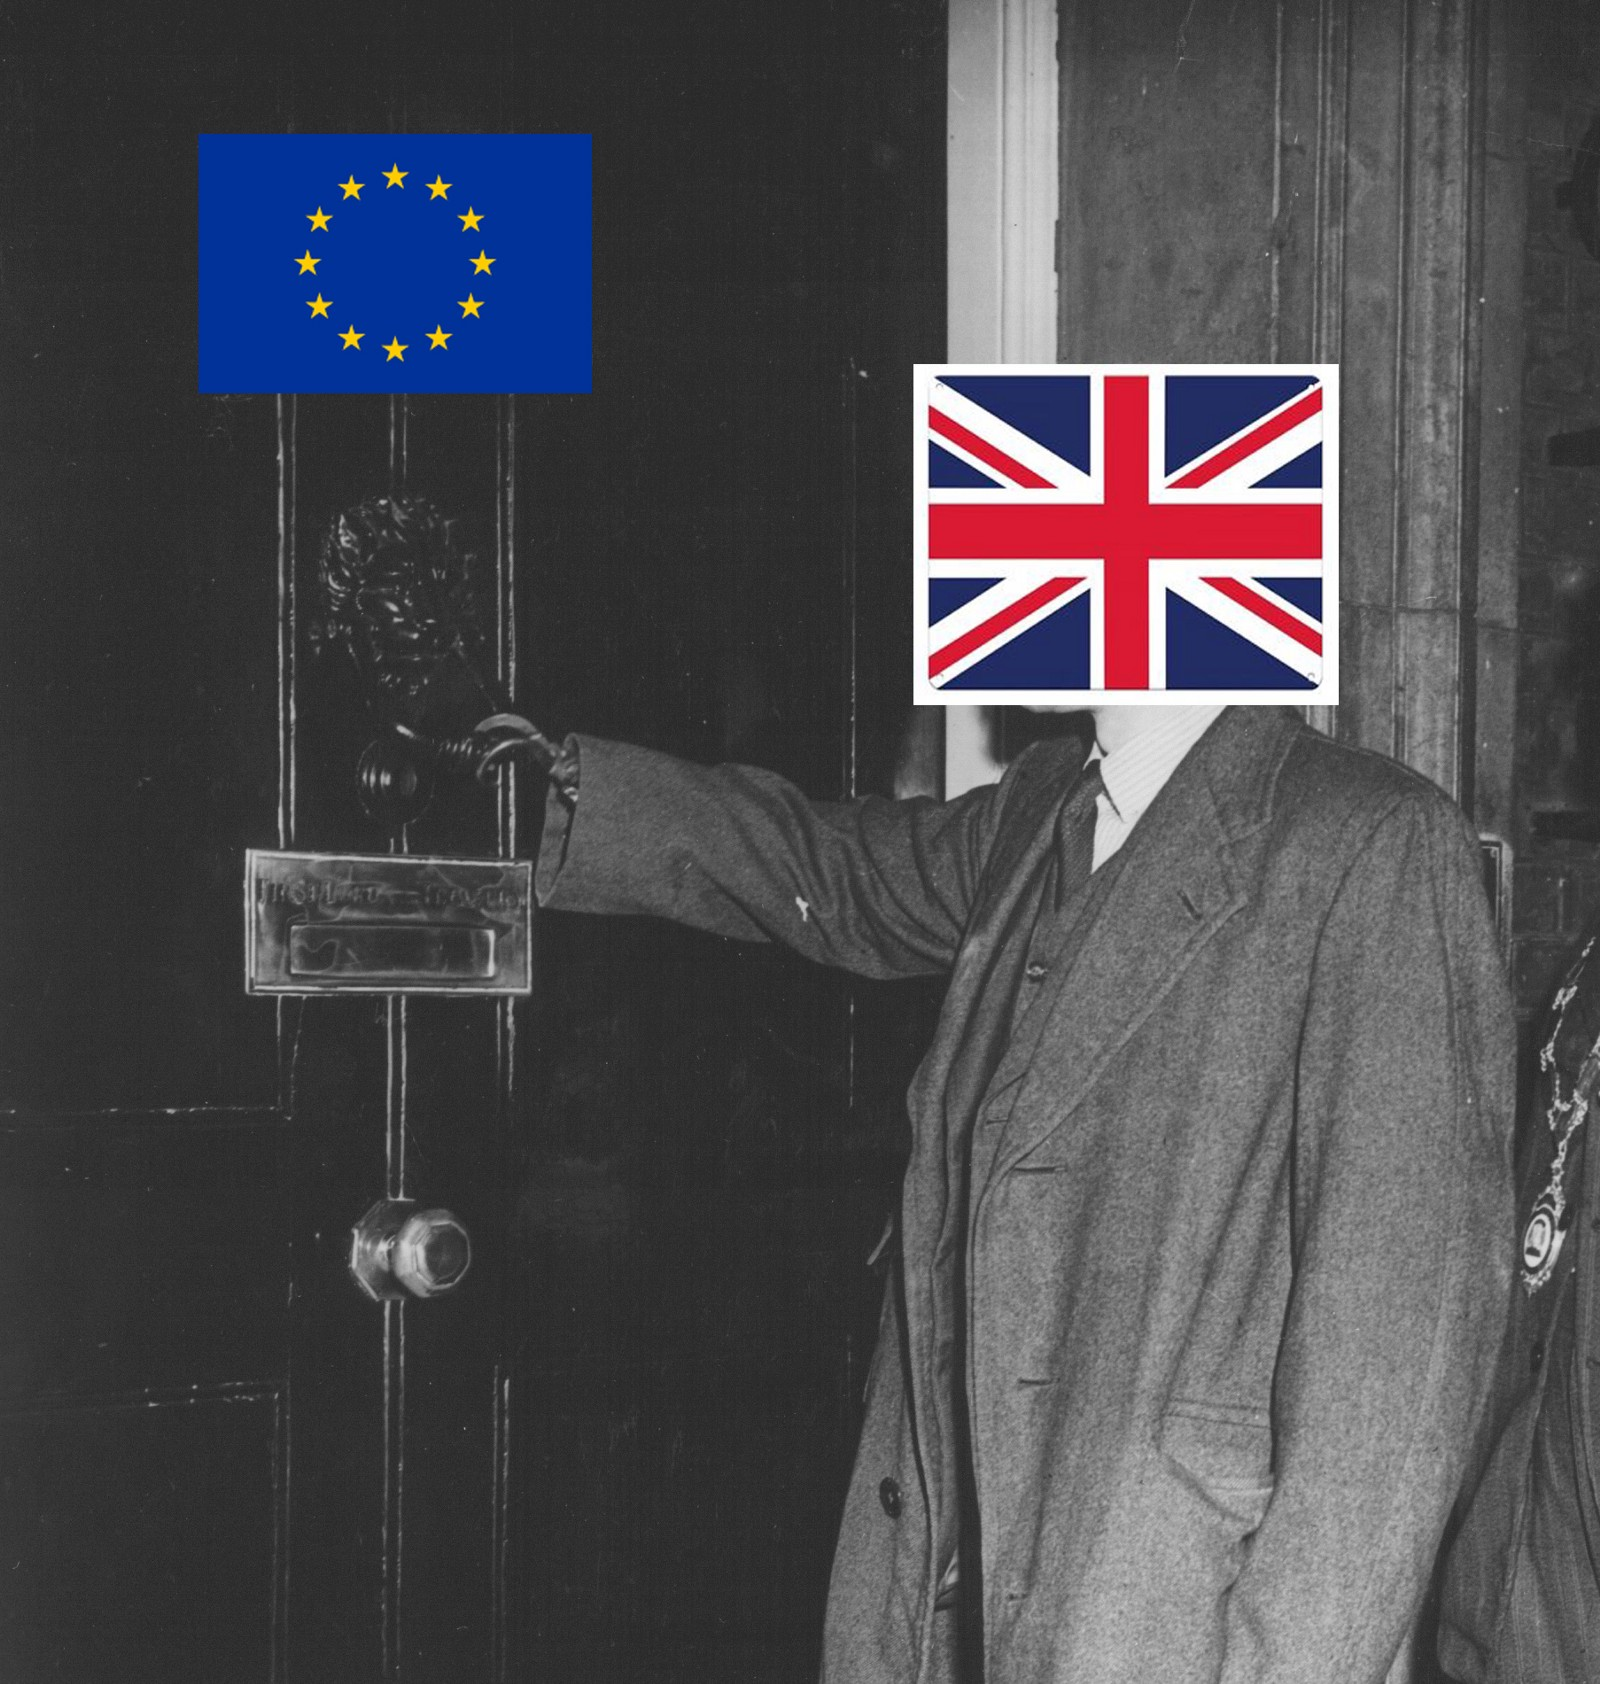 8f2a7d34e3 With latest rumours suggesting Theresa May is angling for an extension to  the Brexit transition process